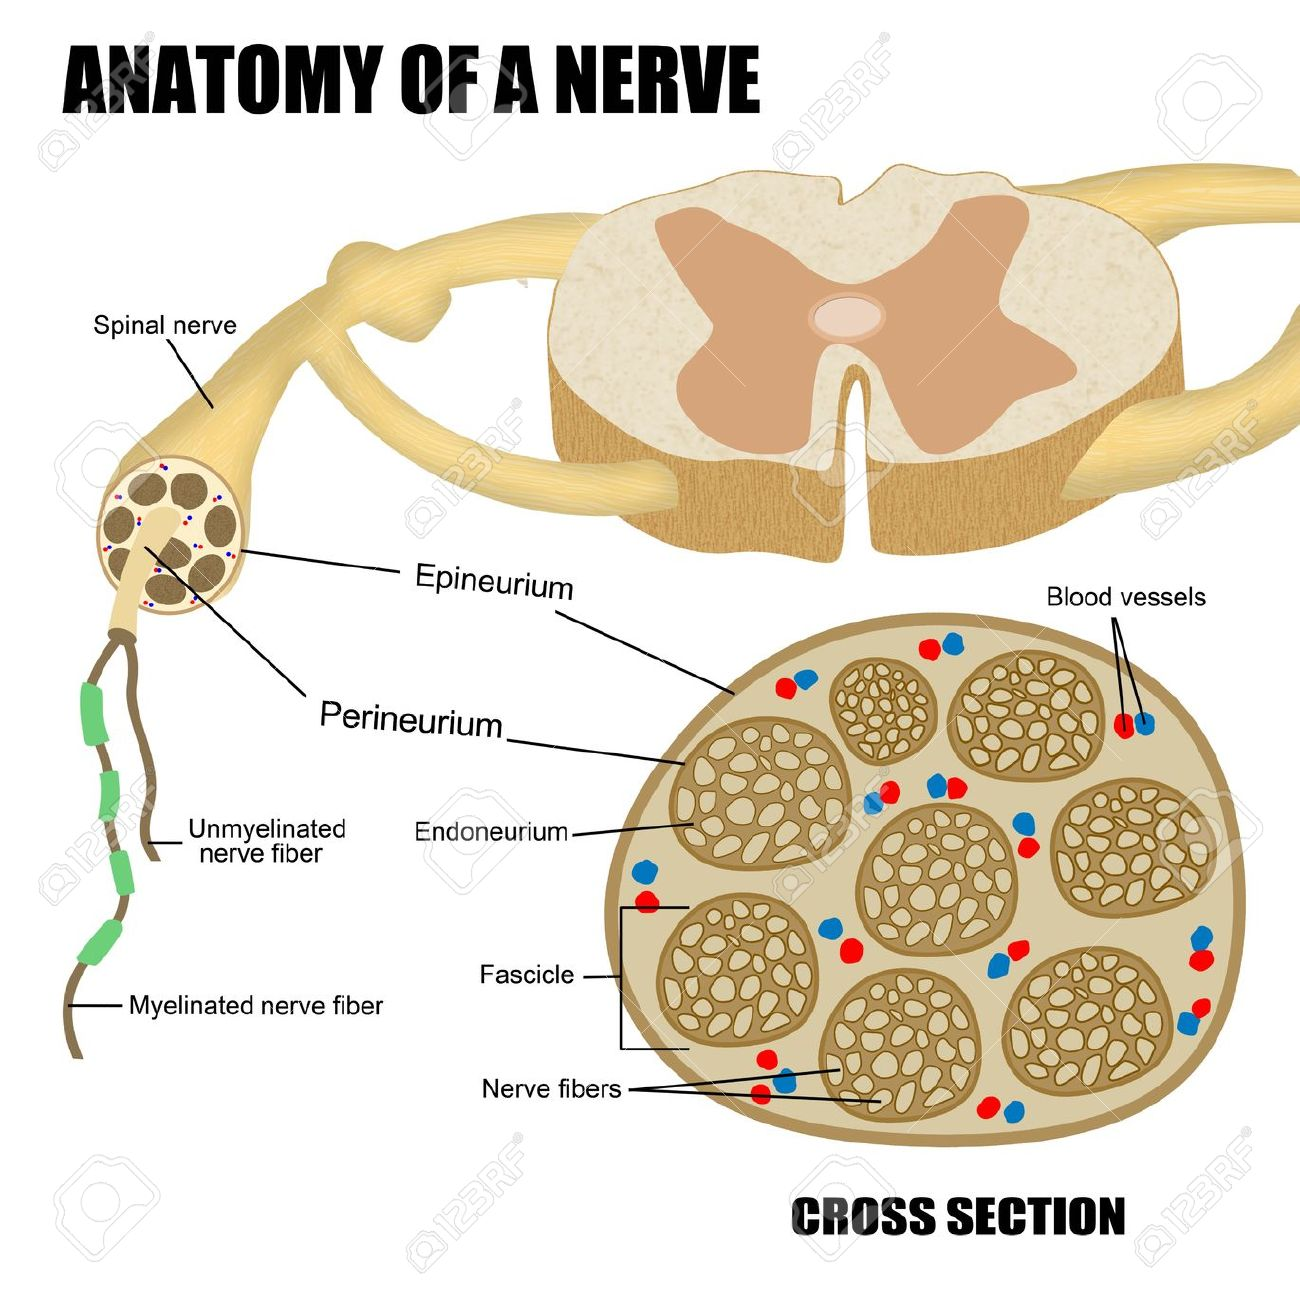 Anatomy Of A Nerve For Basic Medical Education For Clinics Stock